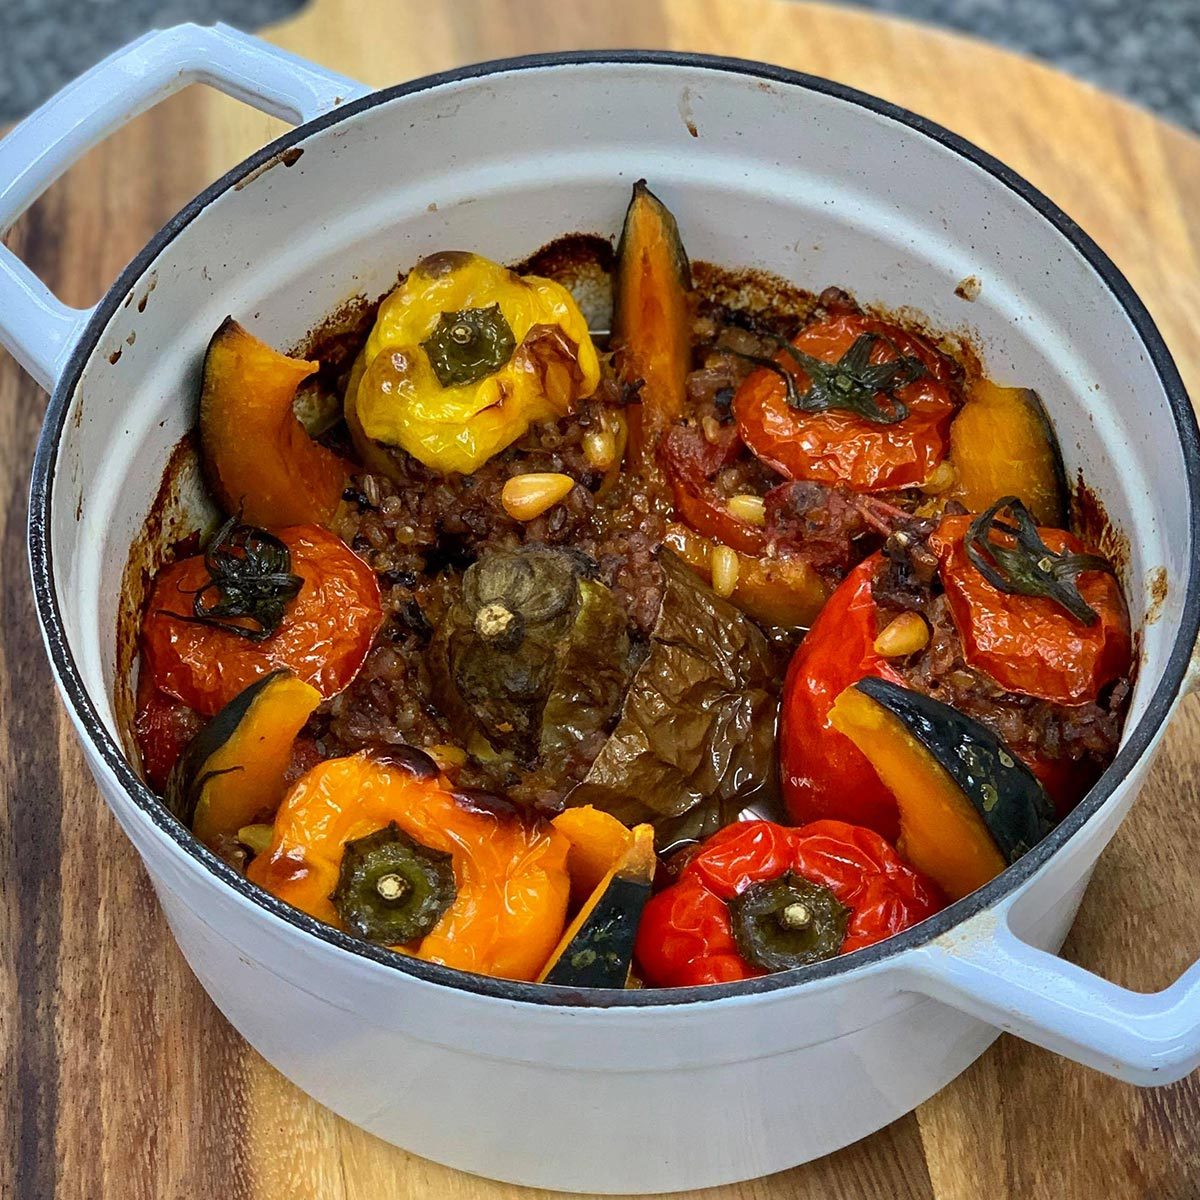 Vegan Greek stuffed peppers and veggies gemista